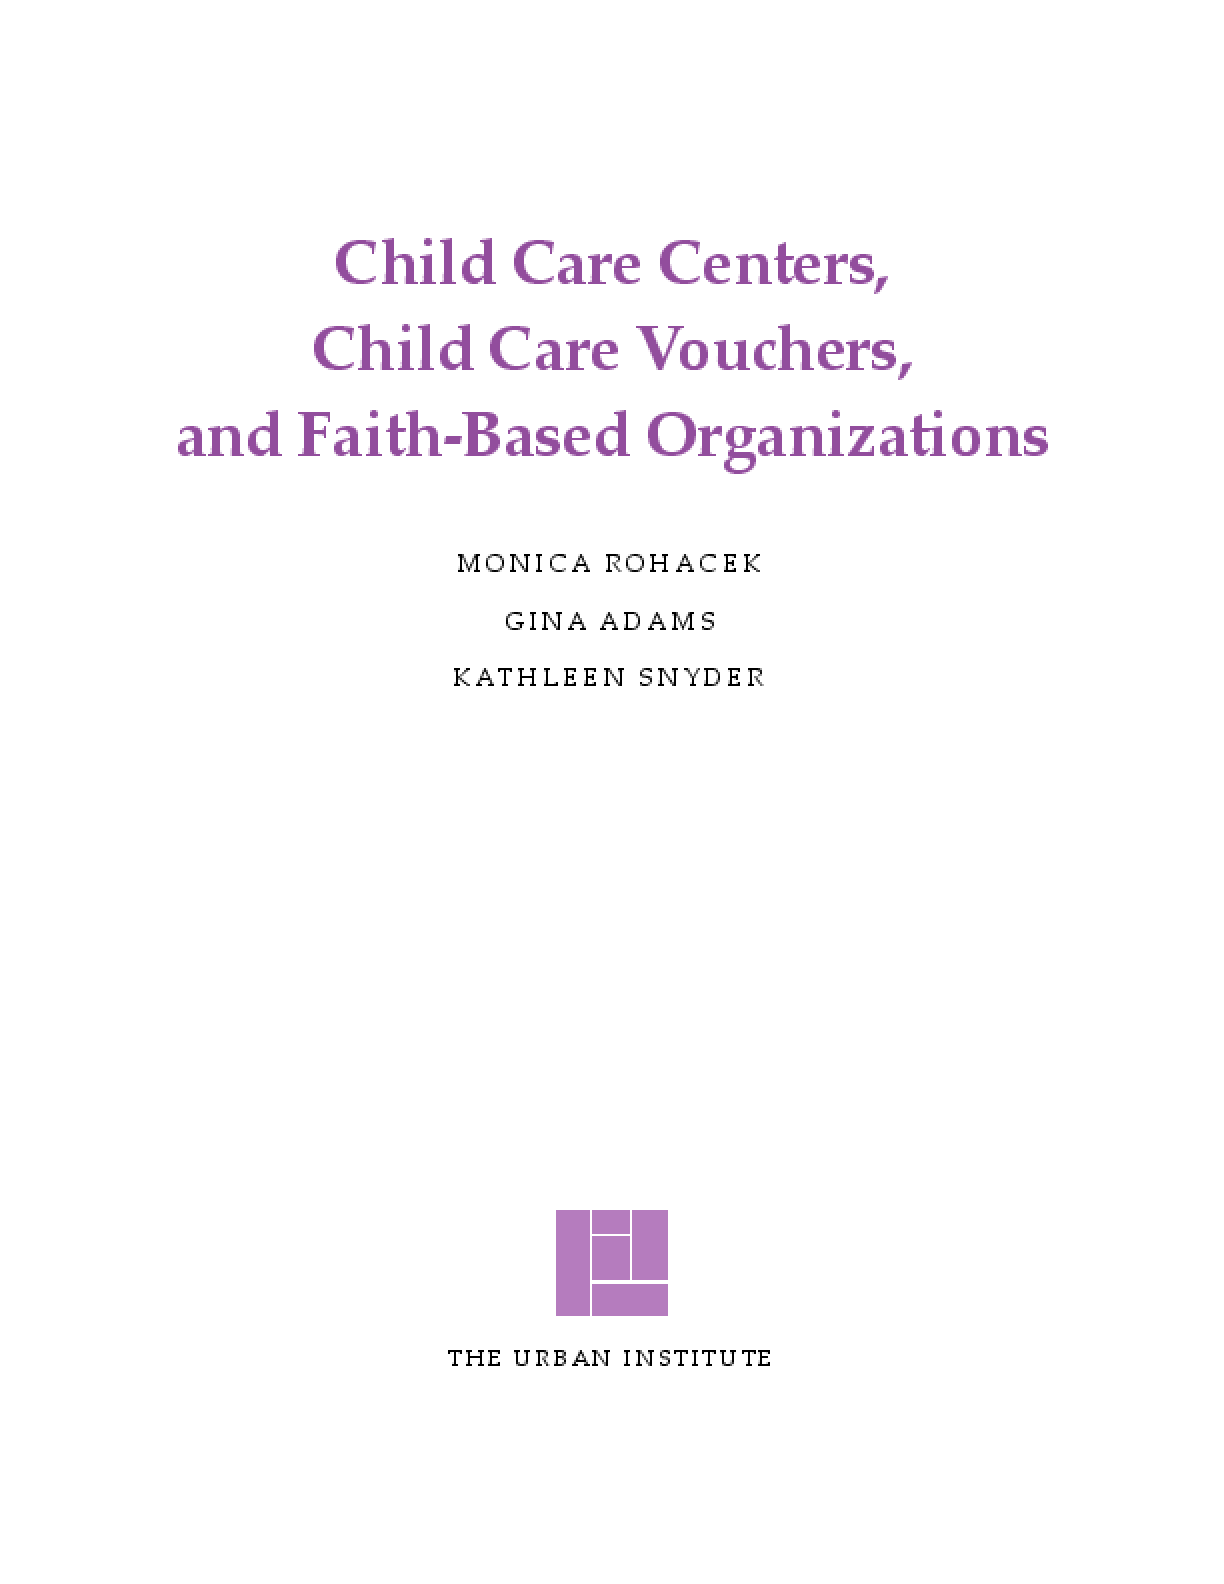 Child Care Centers, Child Care Vouchers, and Faith-Based Organizations